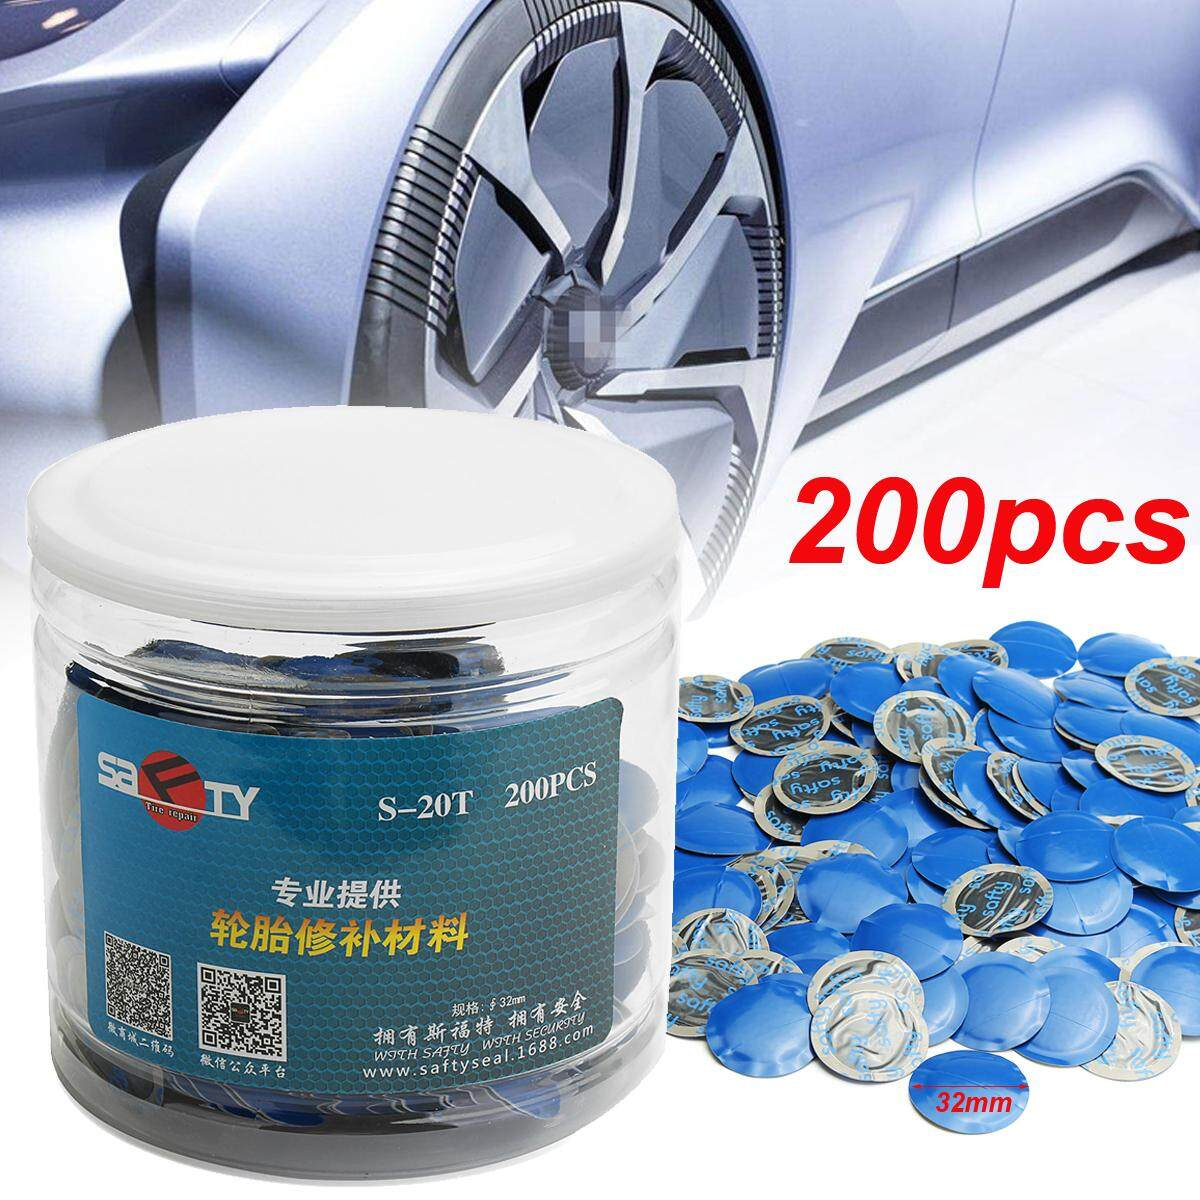 Universal 24pcs 32mm Natural Rubber Wired Tyre Puncture Repair Mushroom Patch By Audew.